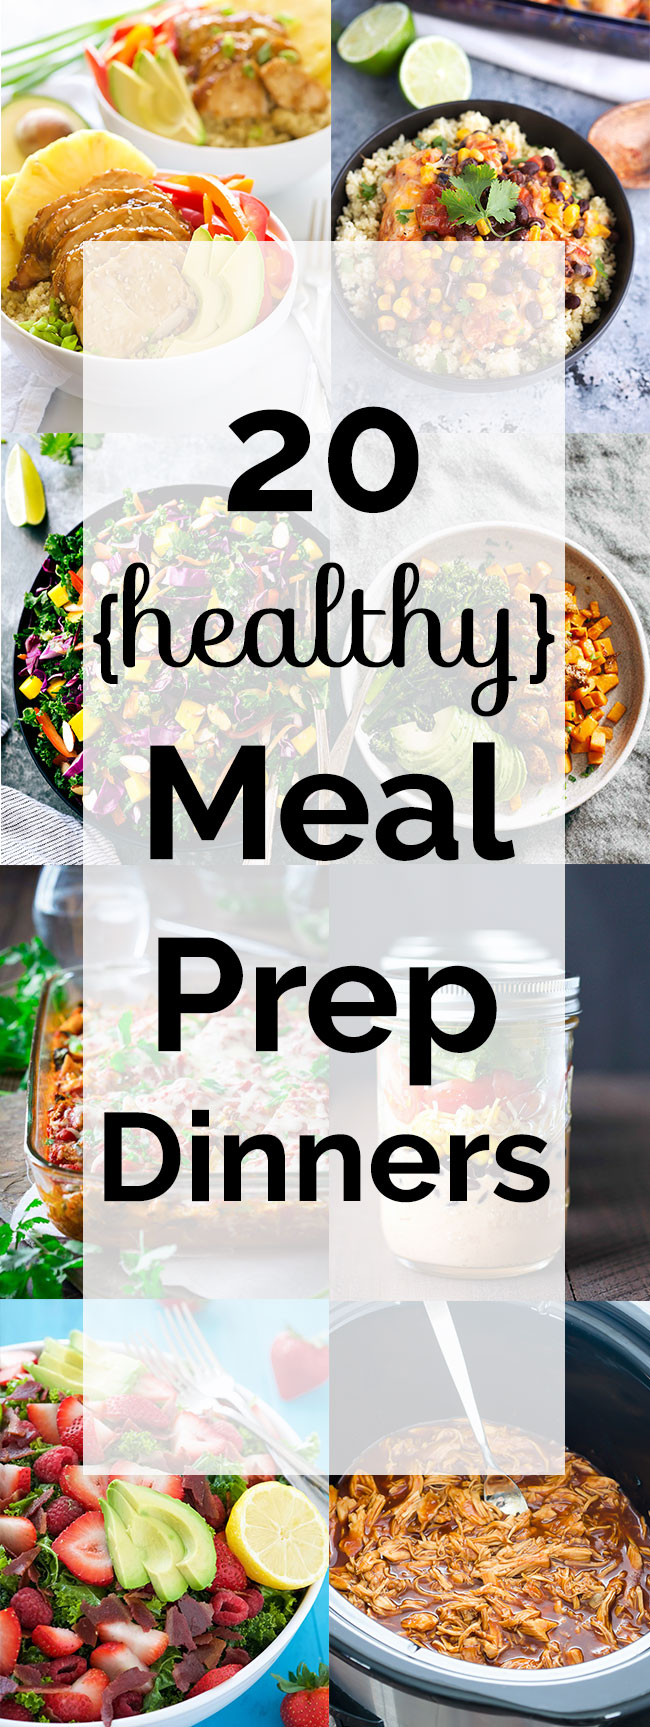 20 healthy meal prep dinners! All these meals are made for busy families on the run! Whether you enjoy meal prepping on Sunday, or enjoying leftovers from last night's dinner, all these meals fit the bill.